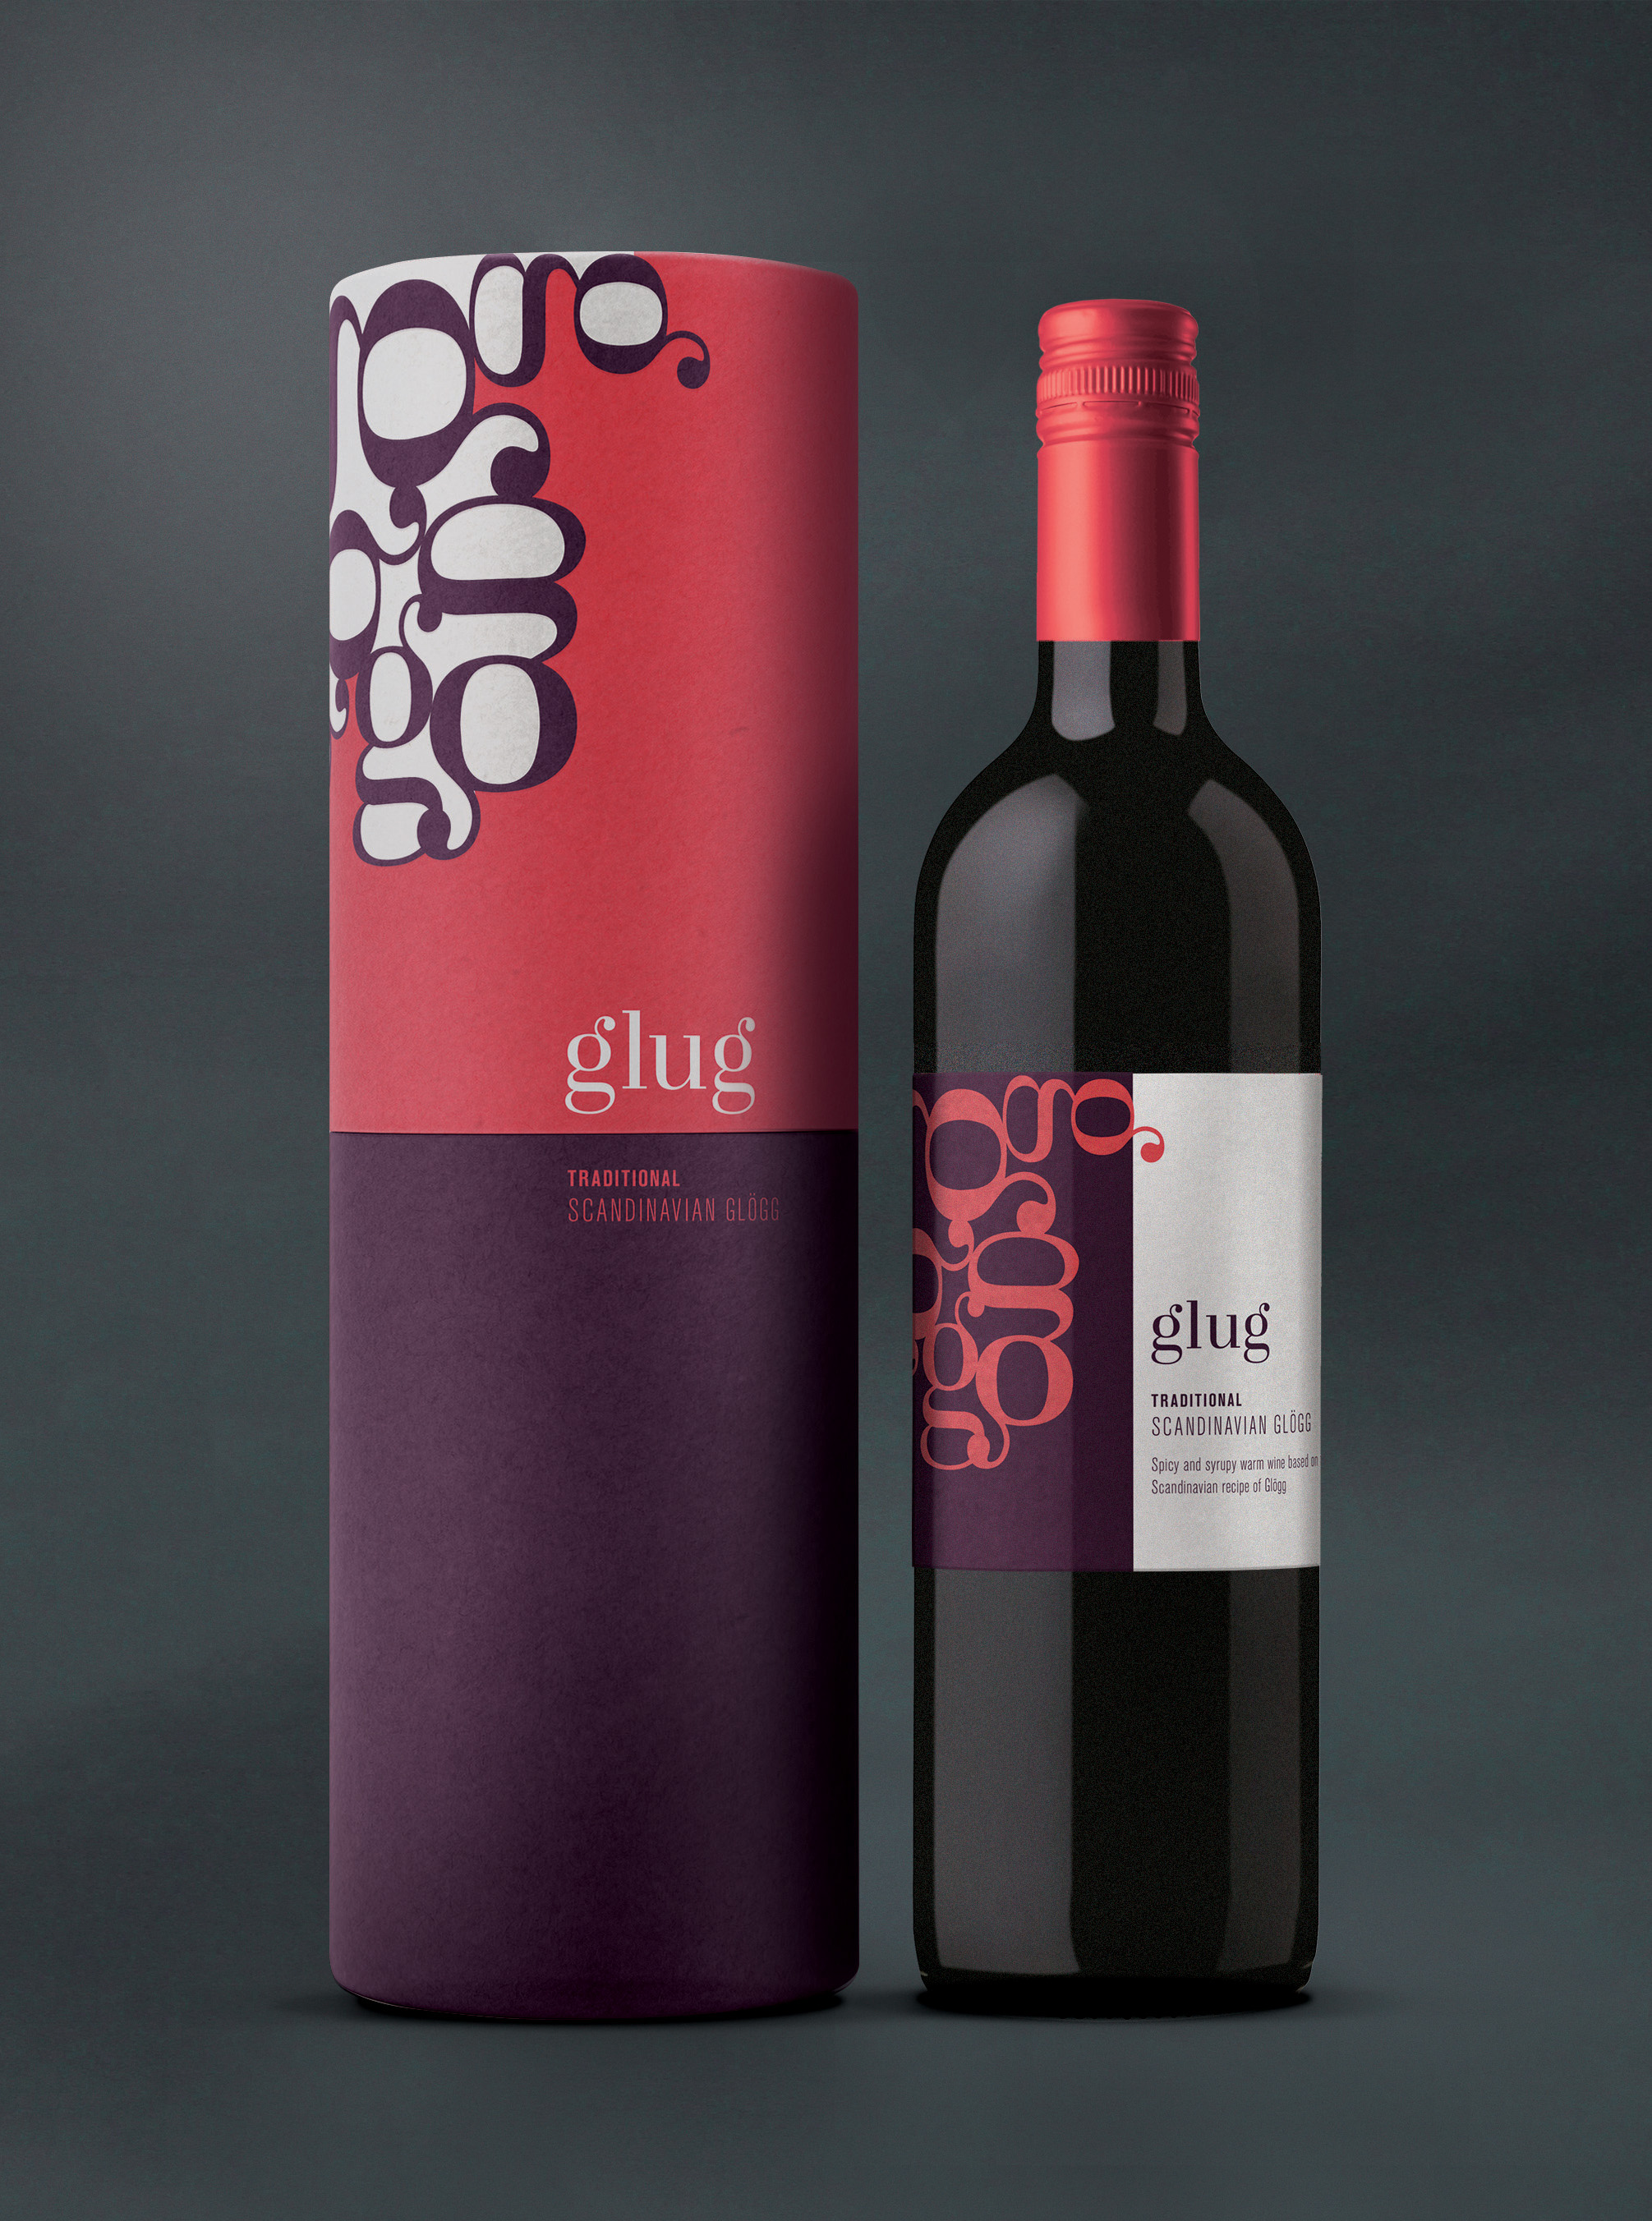 Jenni Doran, Our Revolution, Wine Label Design, Packaging Design